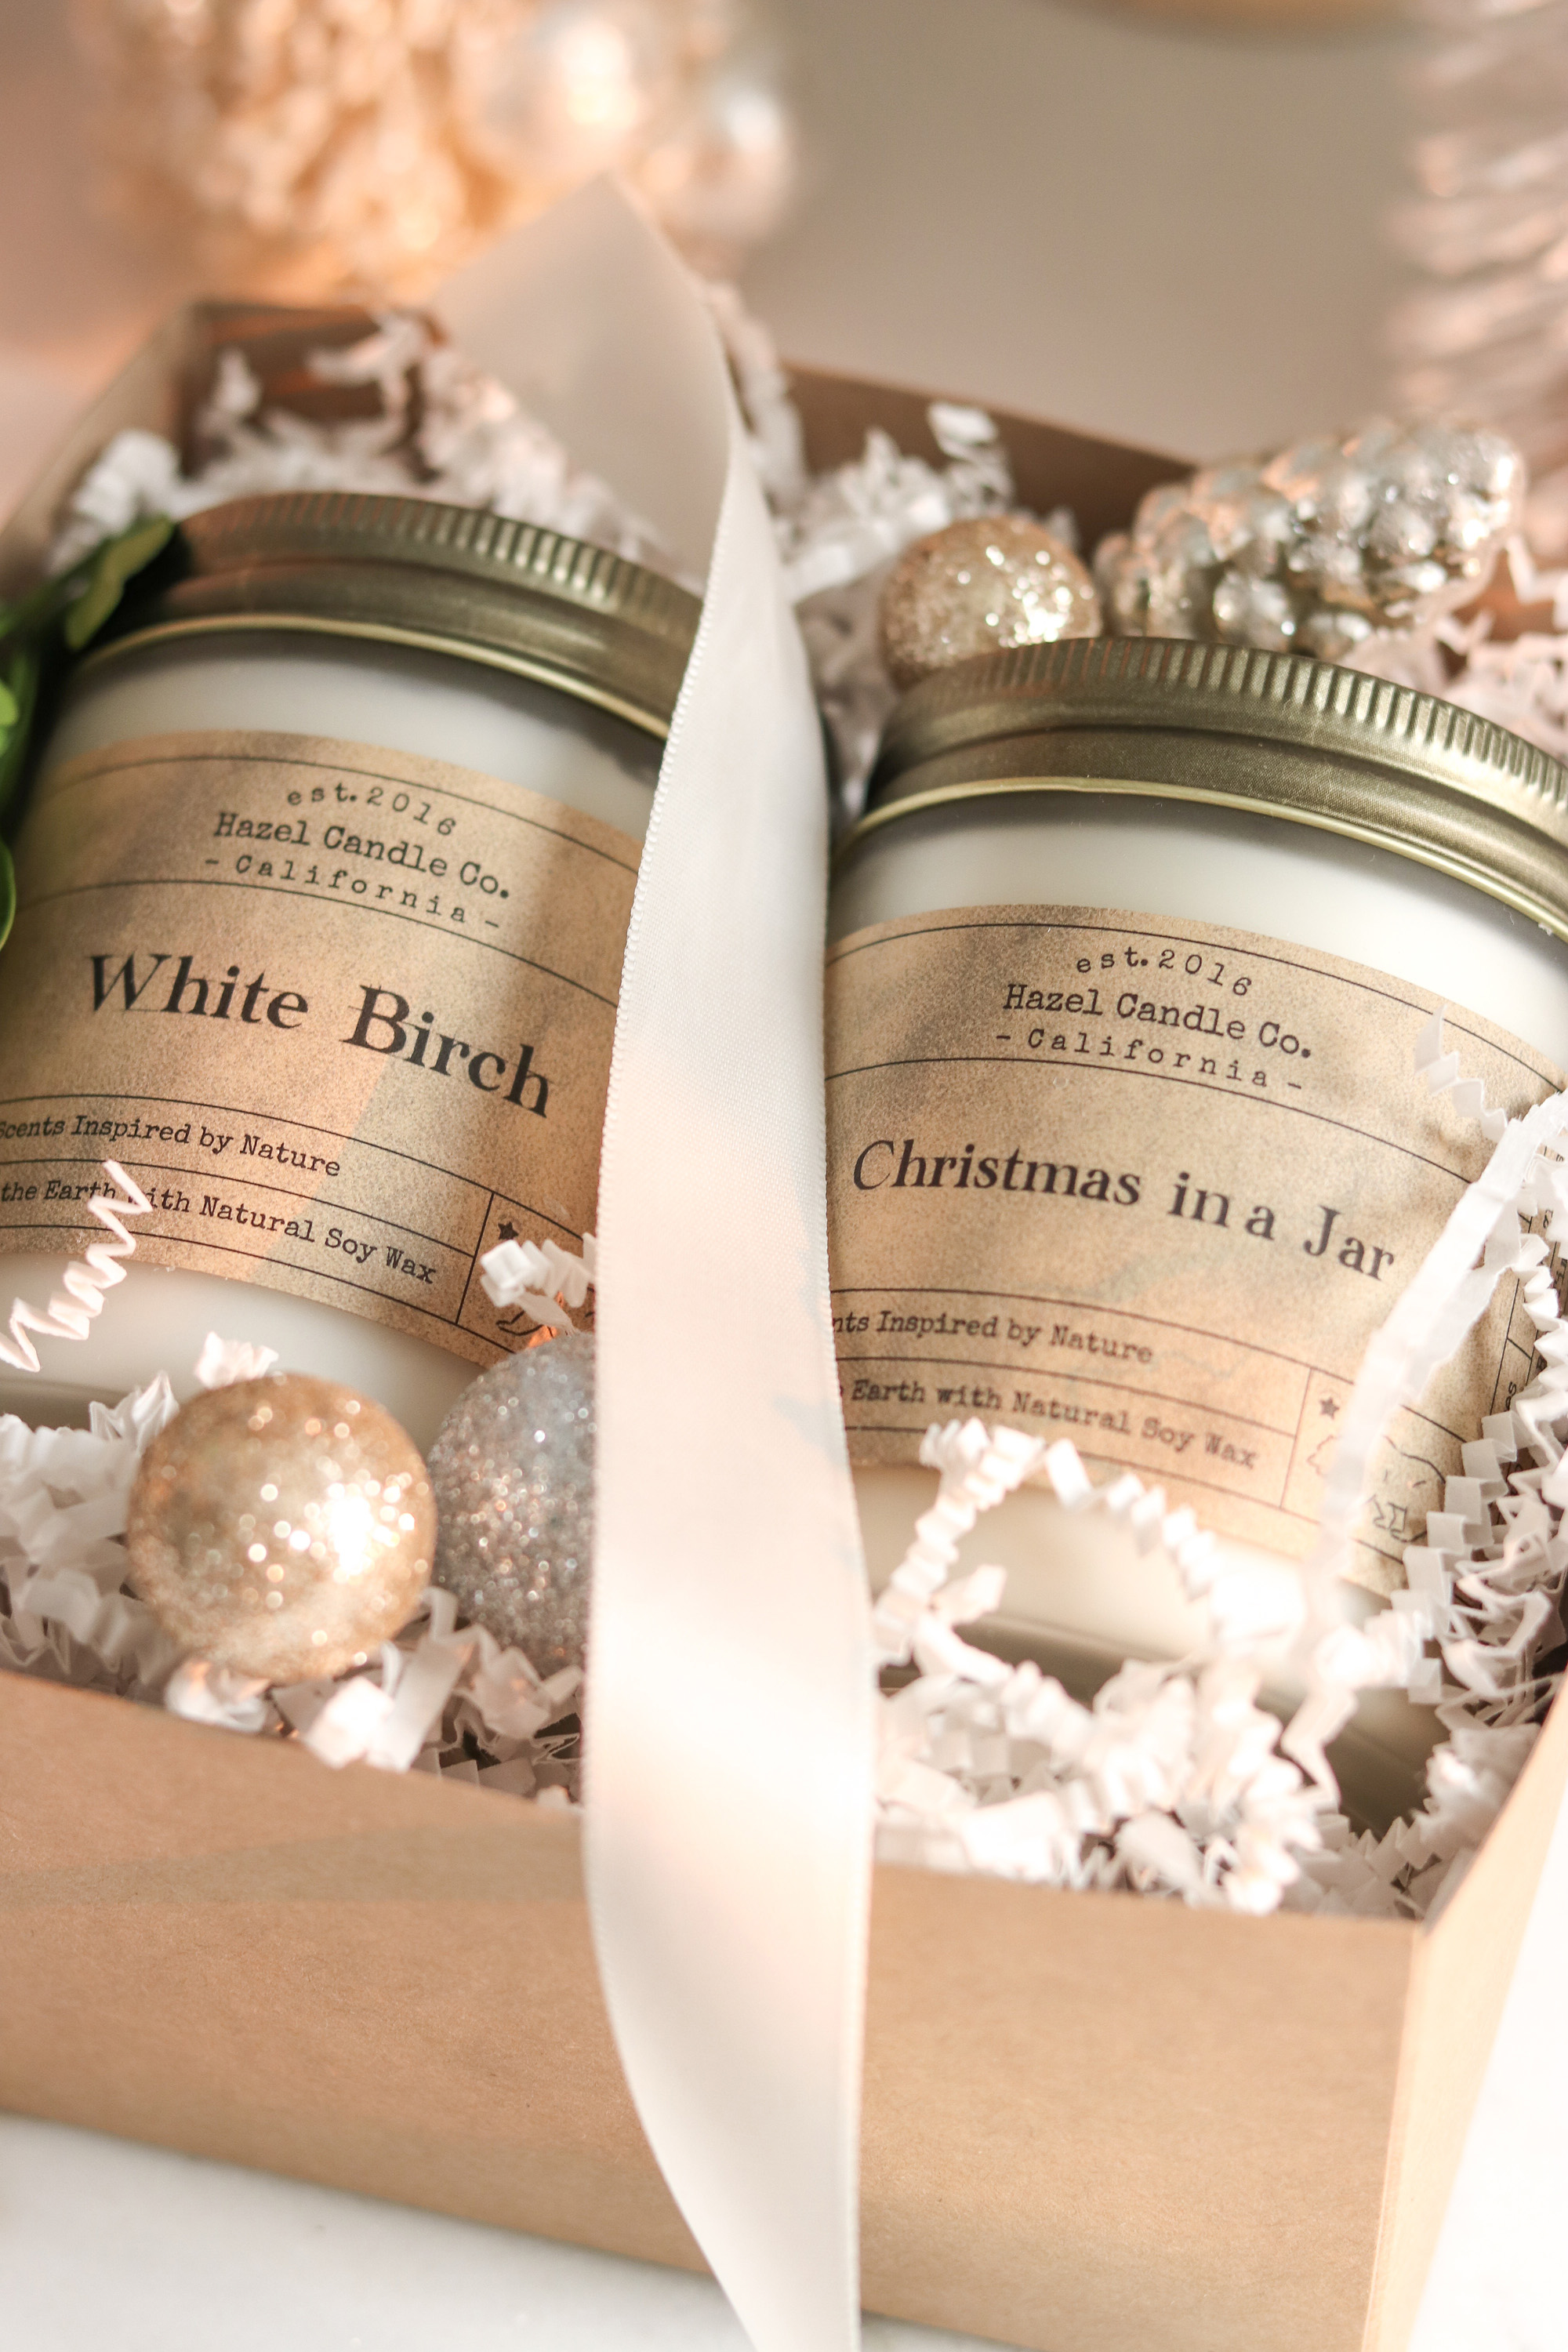 Kristy Wicks x Hazel Candle Co. Holiday Collection!